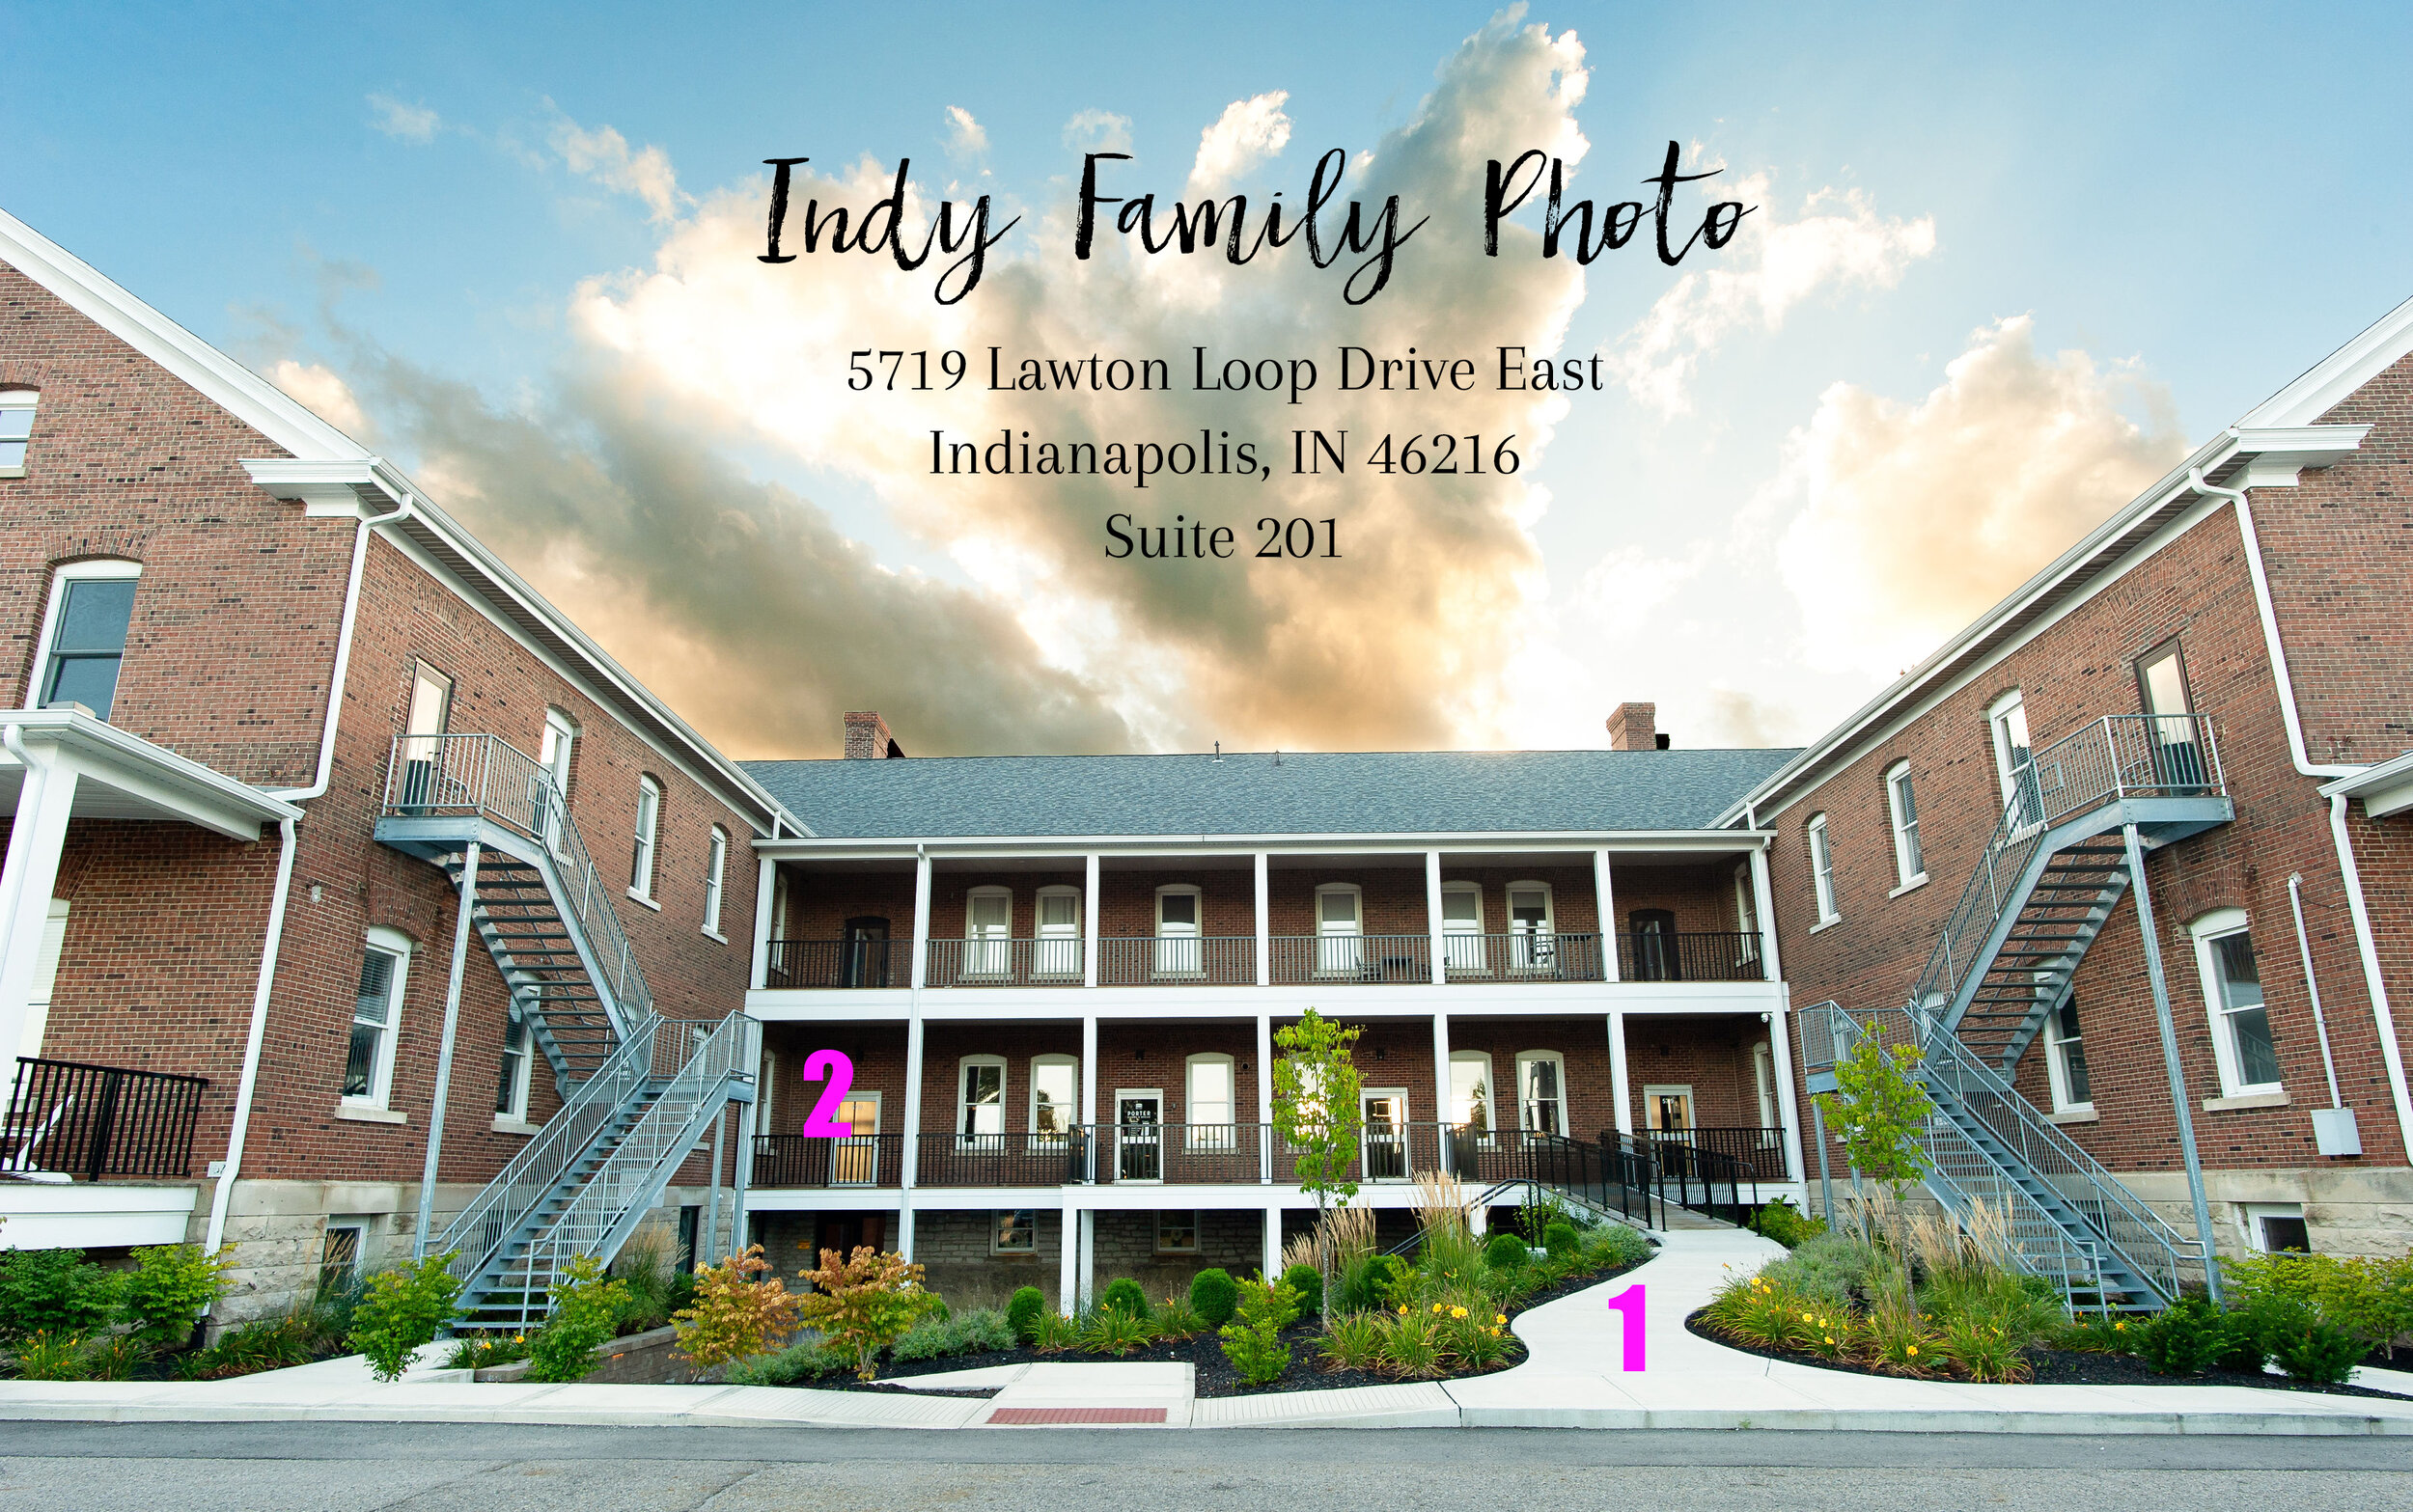 indy family photo directions.jpg